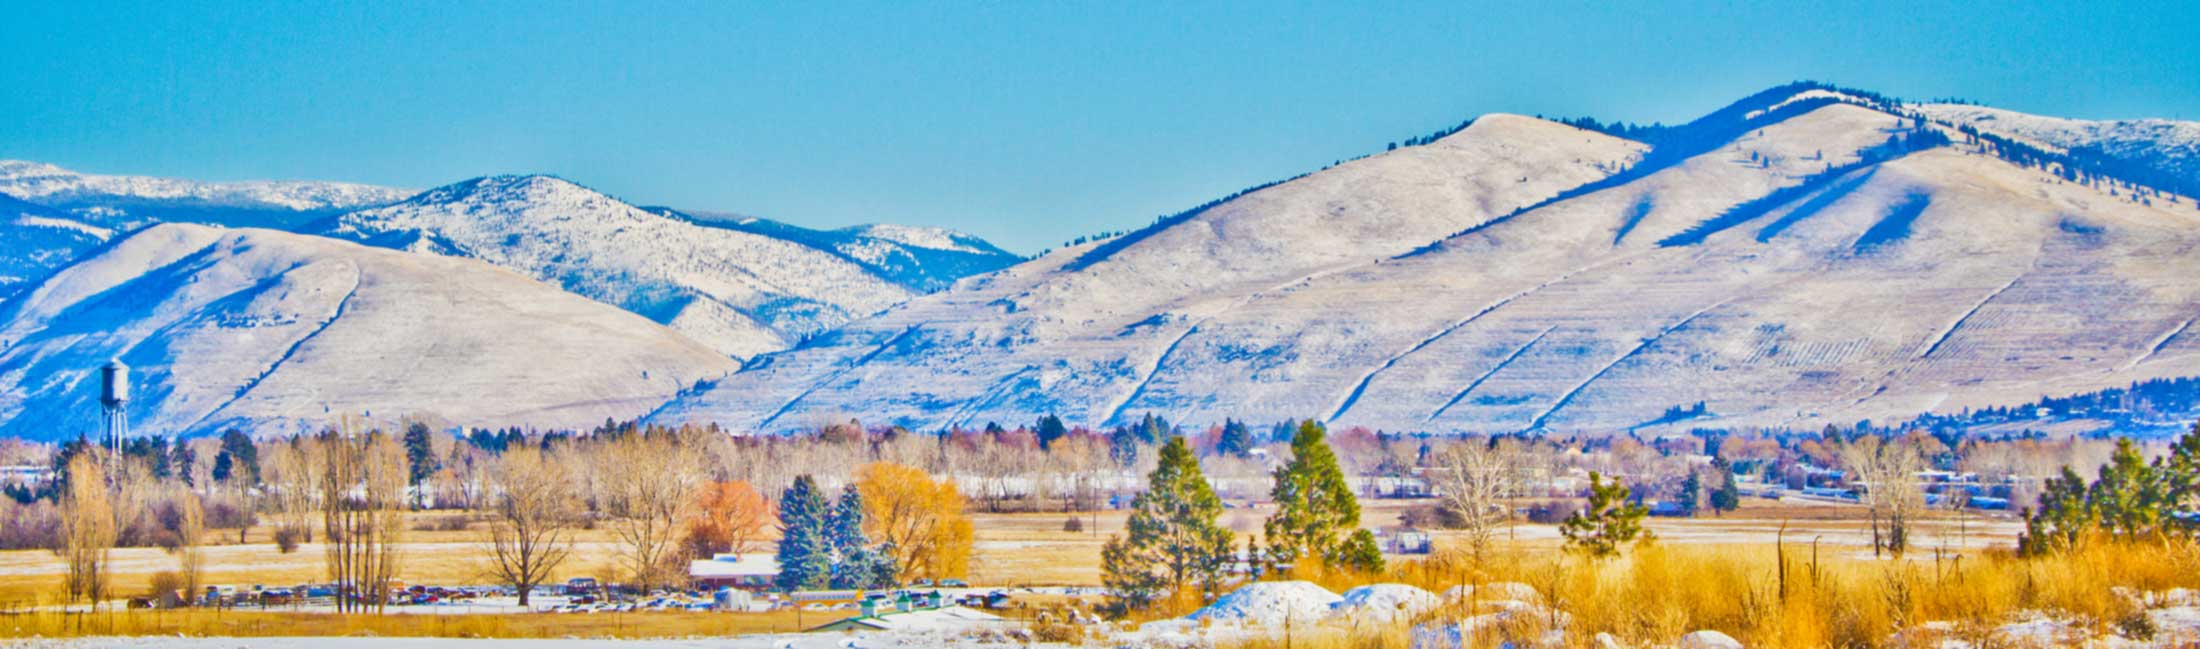 Winter Activities in Missoula, Montana